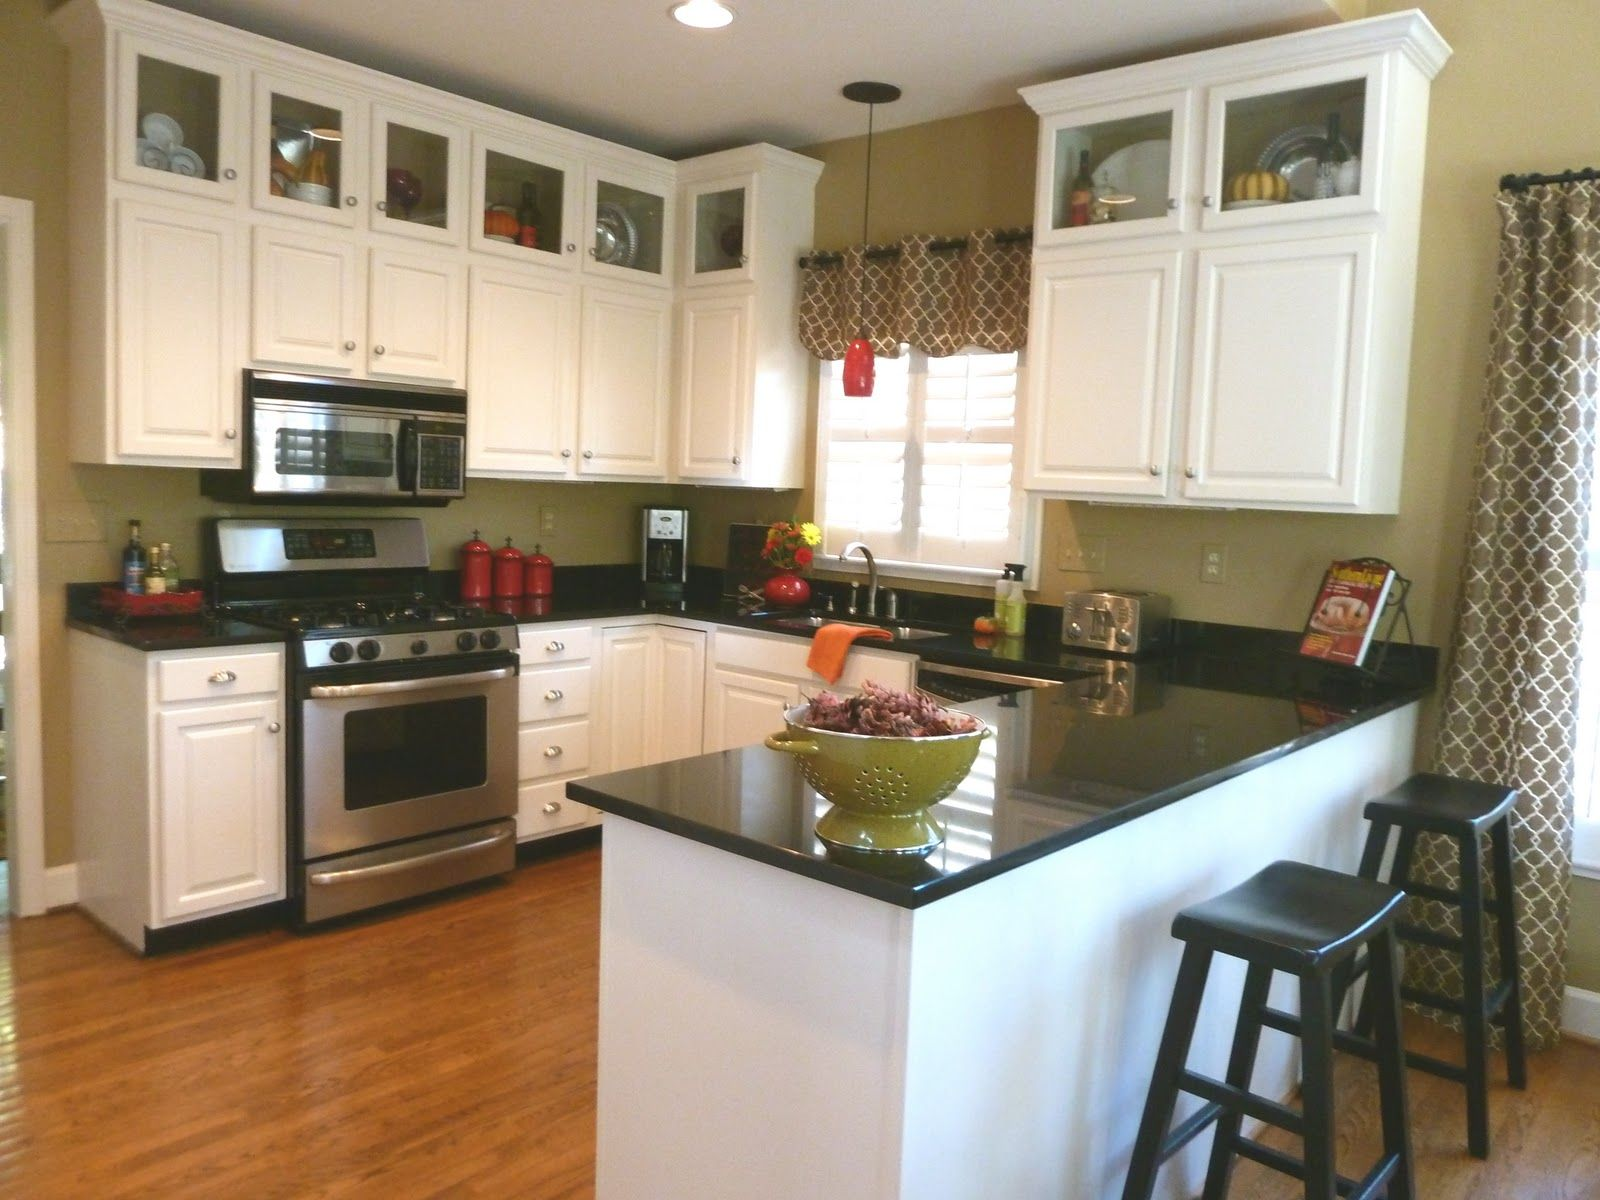 Our Fifth House: Styling Kitchen Cabinets......   House   Pinterest ...